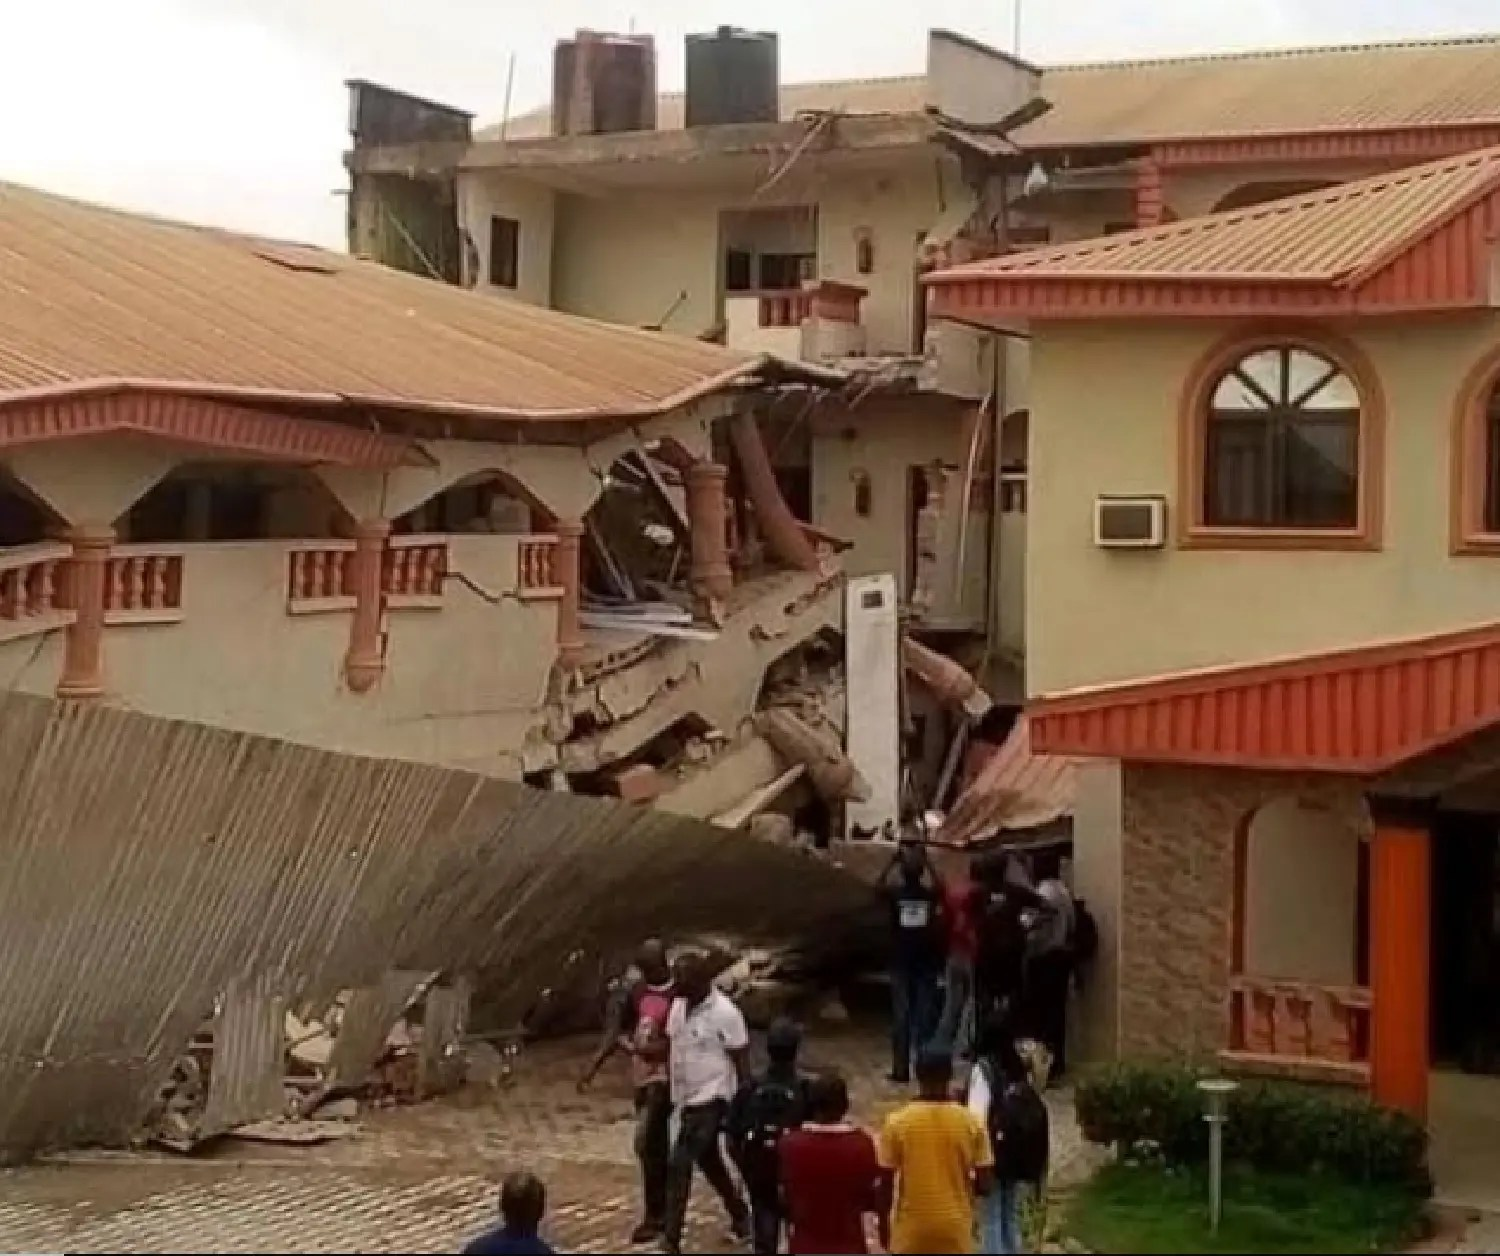 BREAKING: Fear grips Ebonyi residents as hotel collapses in Abakaliki (PHOTOS) - Vanguard